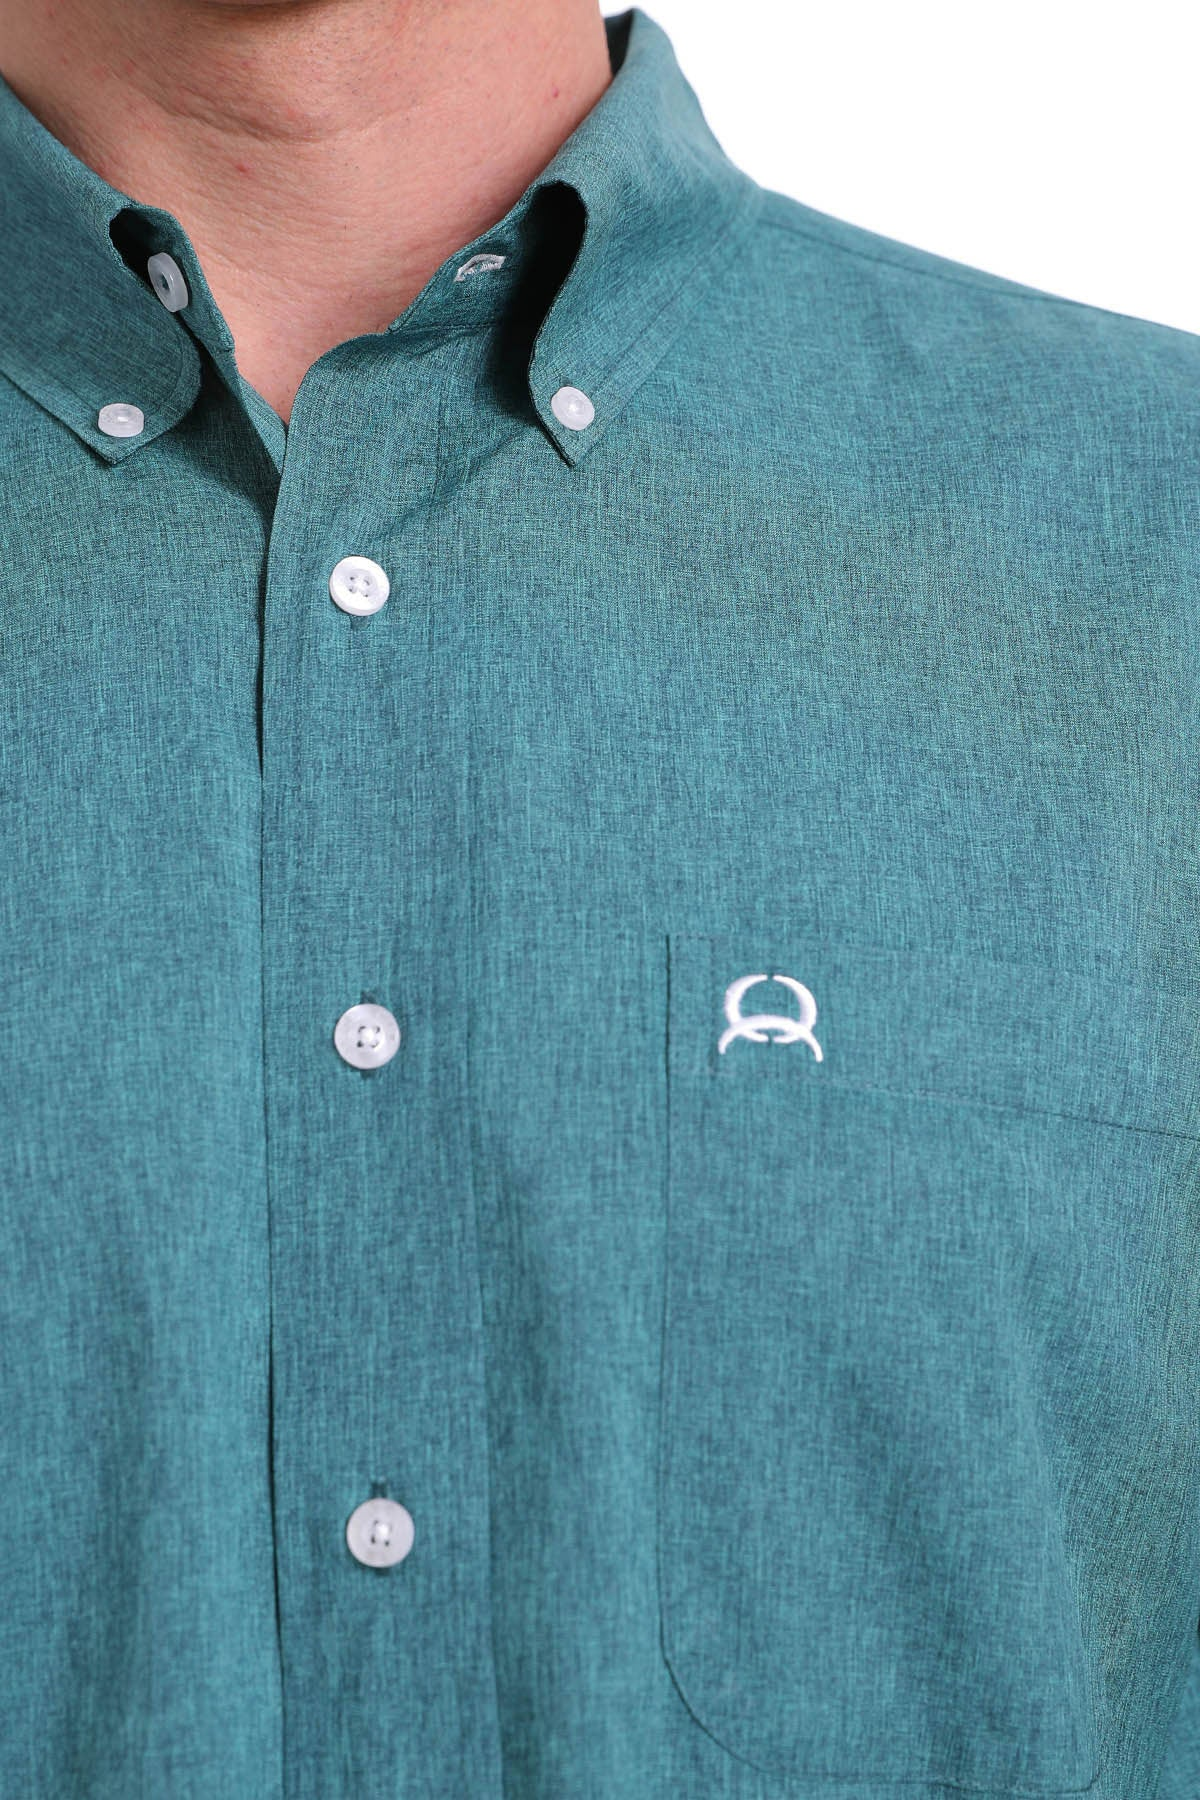 Cinch Arena Flex Dry Material Long Sleeve Emerald Shirt